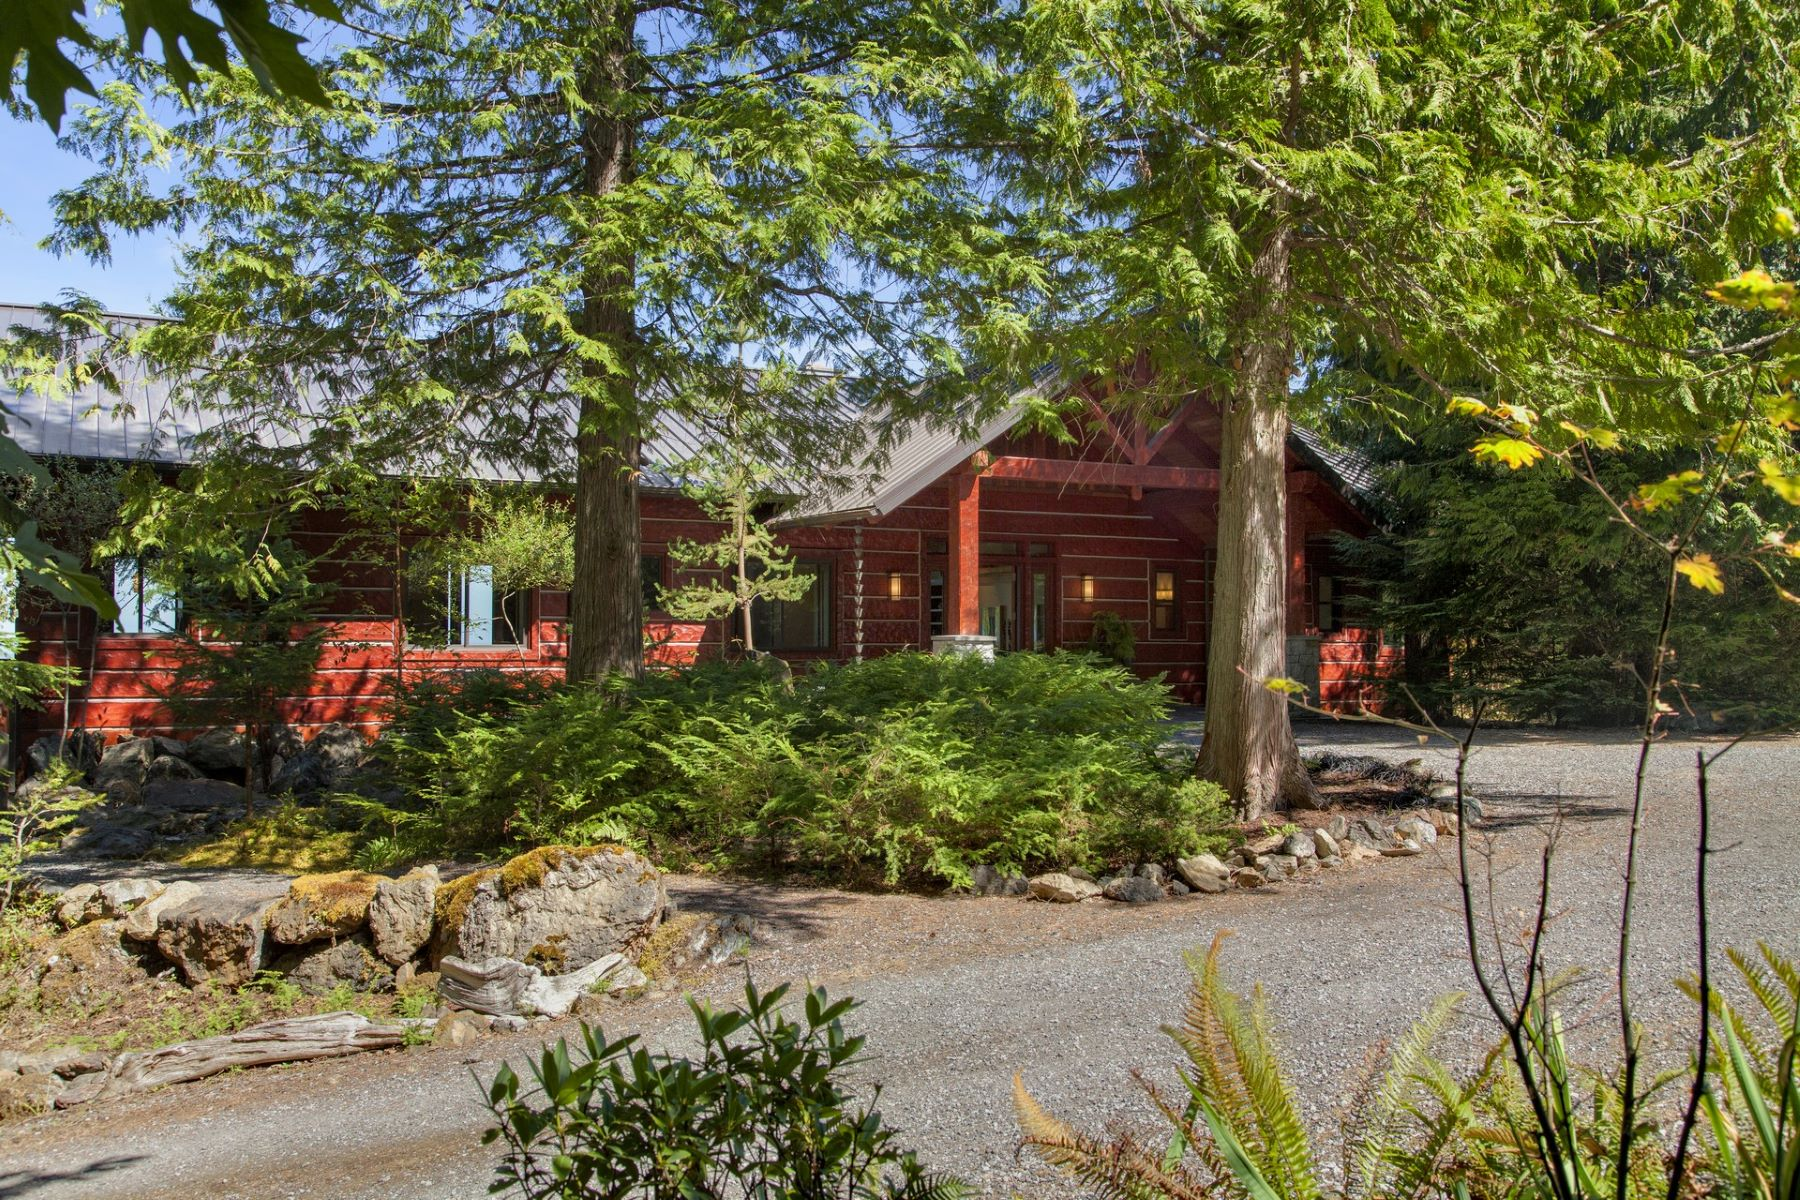 Single Family Home for Sale at Spring Hill Lodge 609 Spring Hill Rd Orcas, Washington 98245 United States